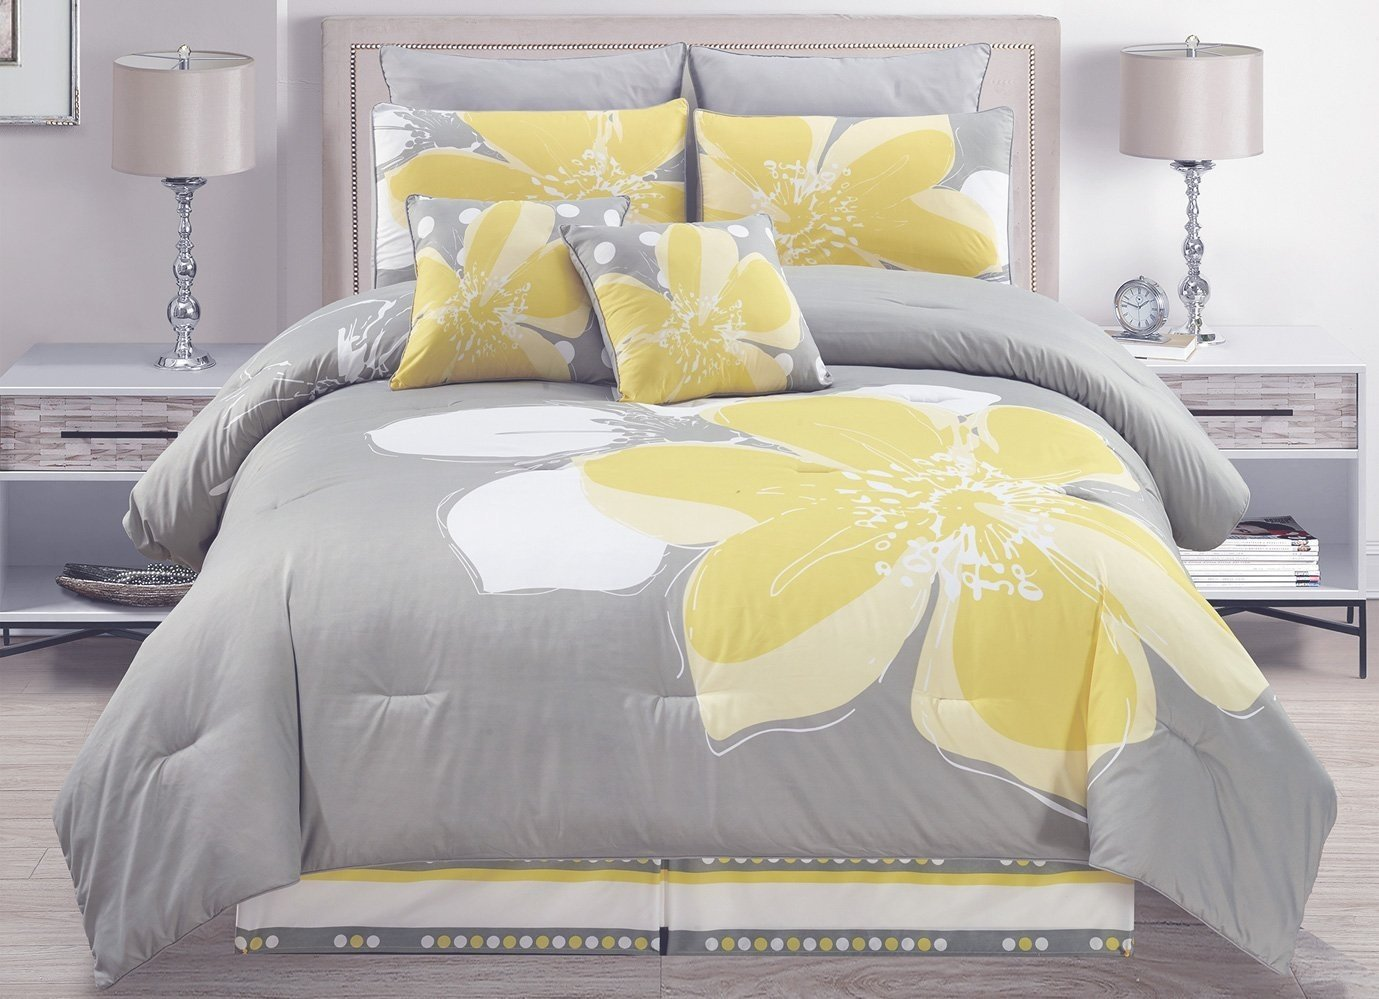 12 - Piece Yellow Grey White floral Bed-in-a-bag California CAL KING Size Bedding + Sheets + Accent Pillows Comforter set